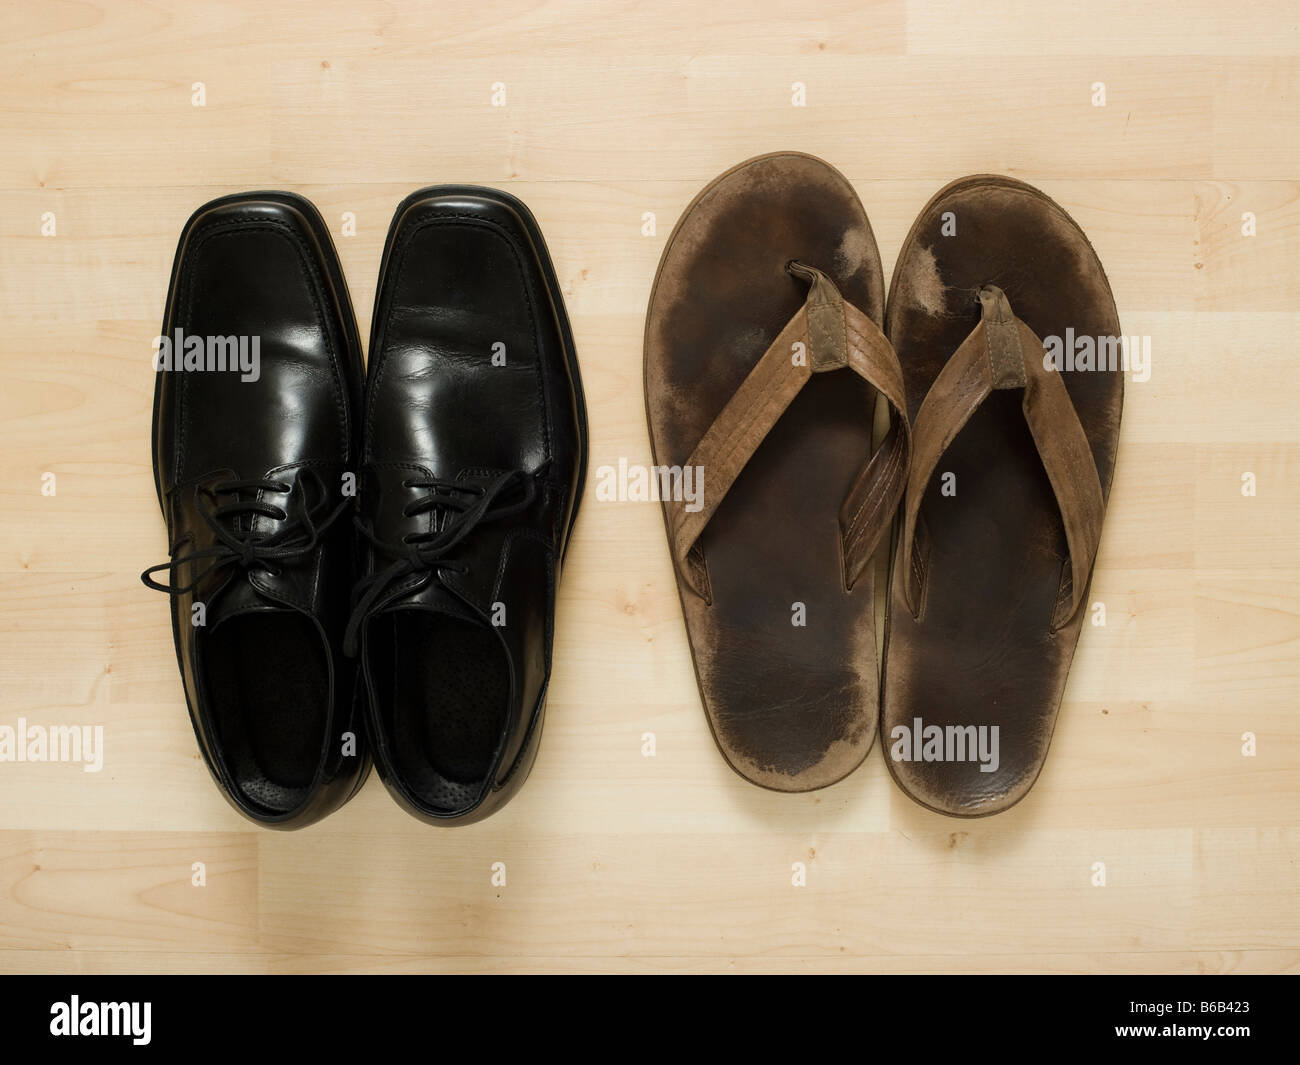 business shoes and flip flops - Stock Image